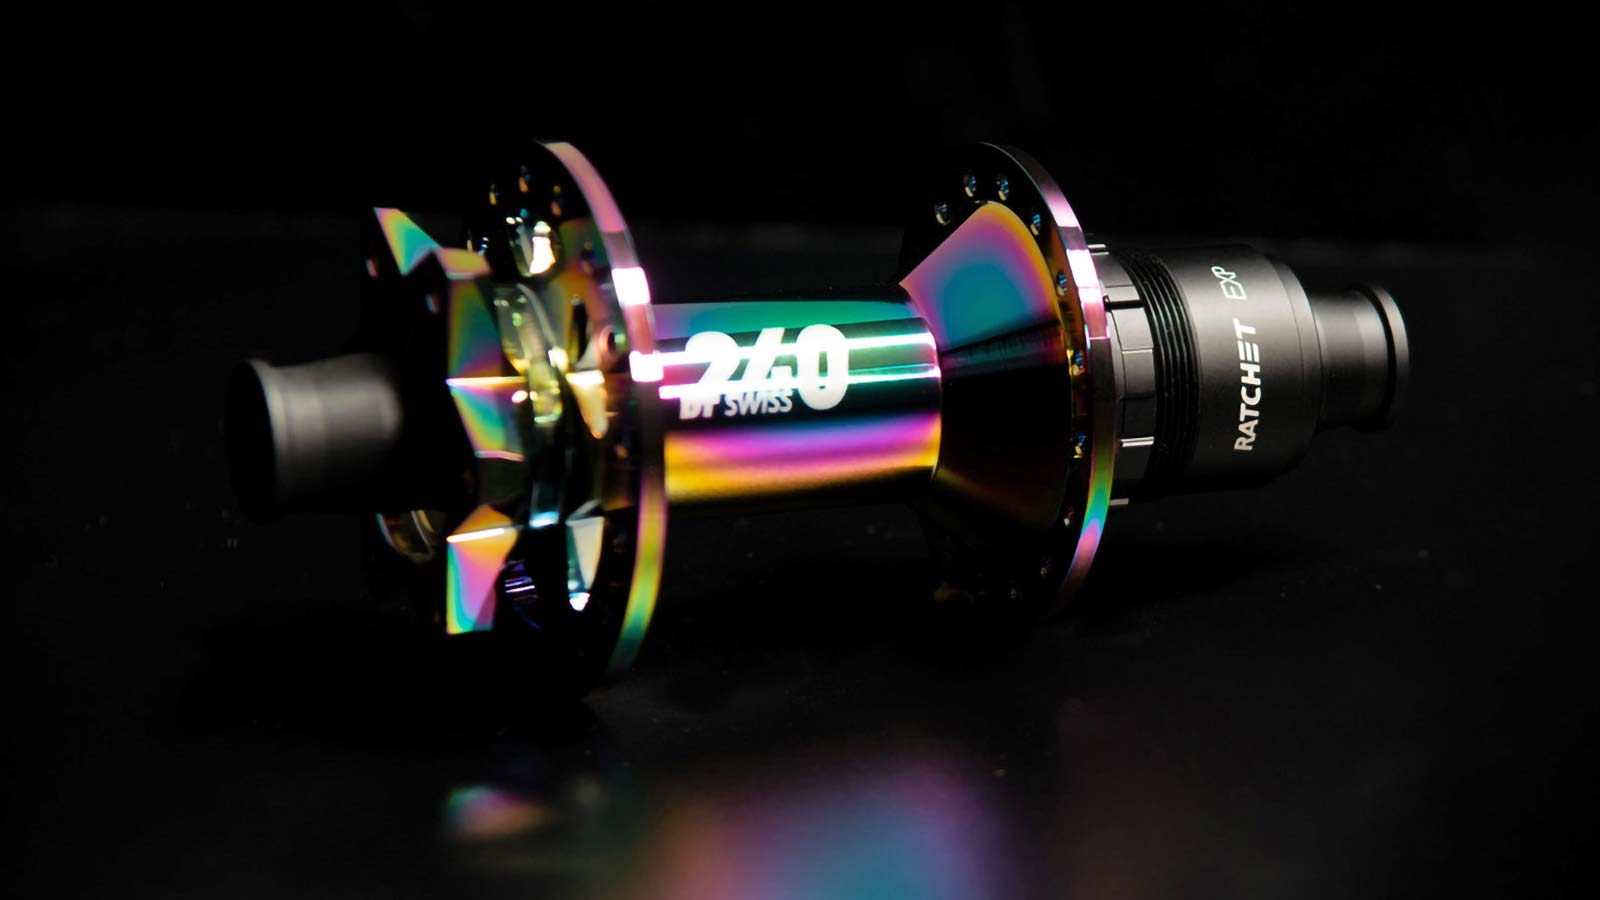 DT Swiss 240 Oil Slick Limited edition mountain bike hubs, 240 EXP Classic MTB rear hub